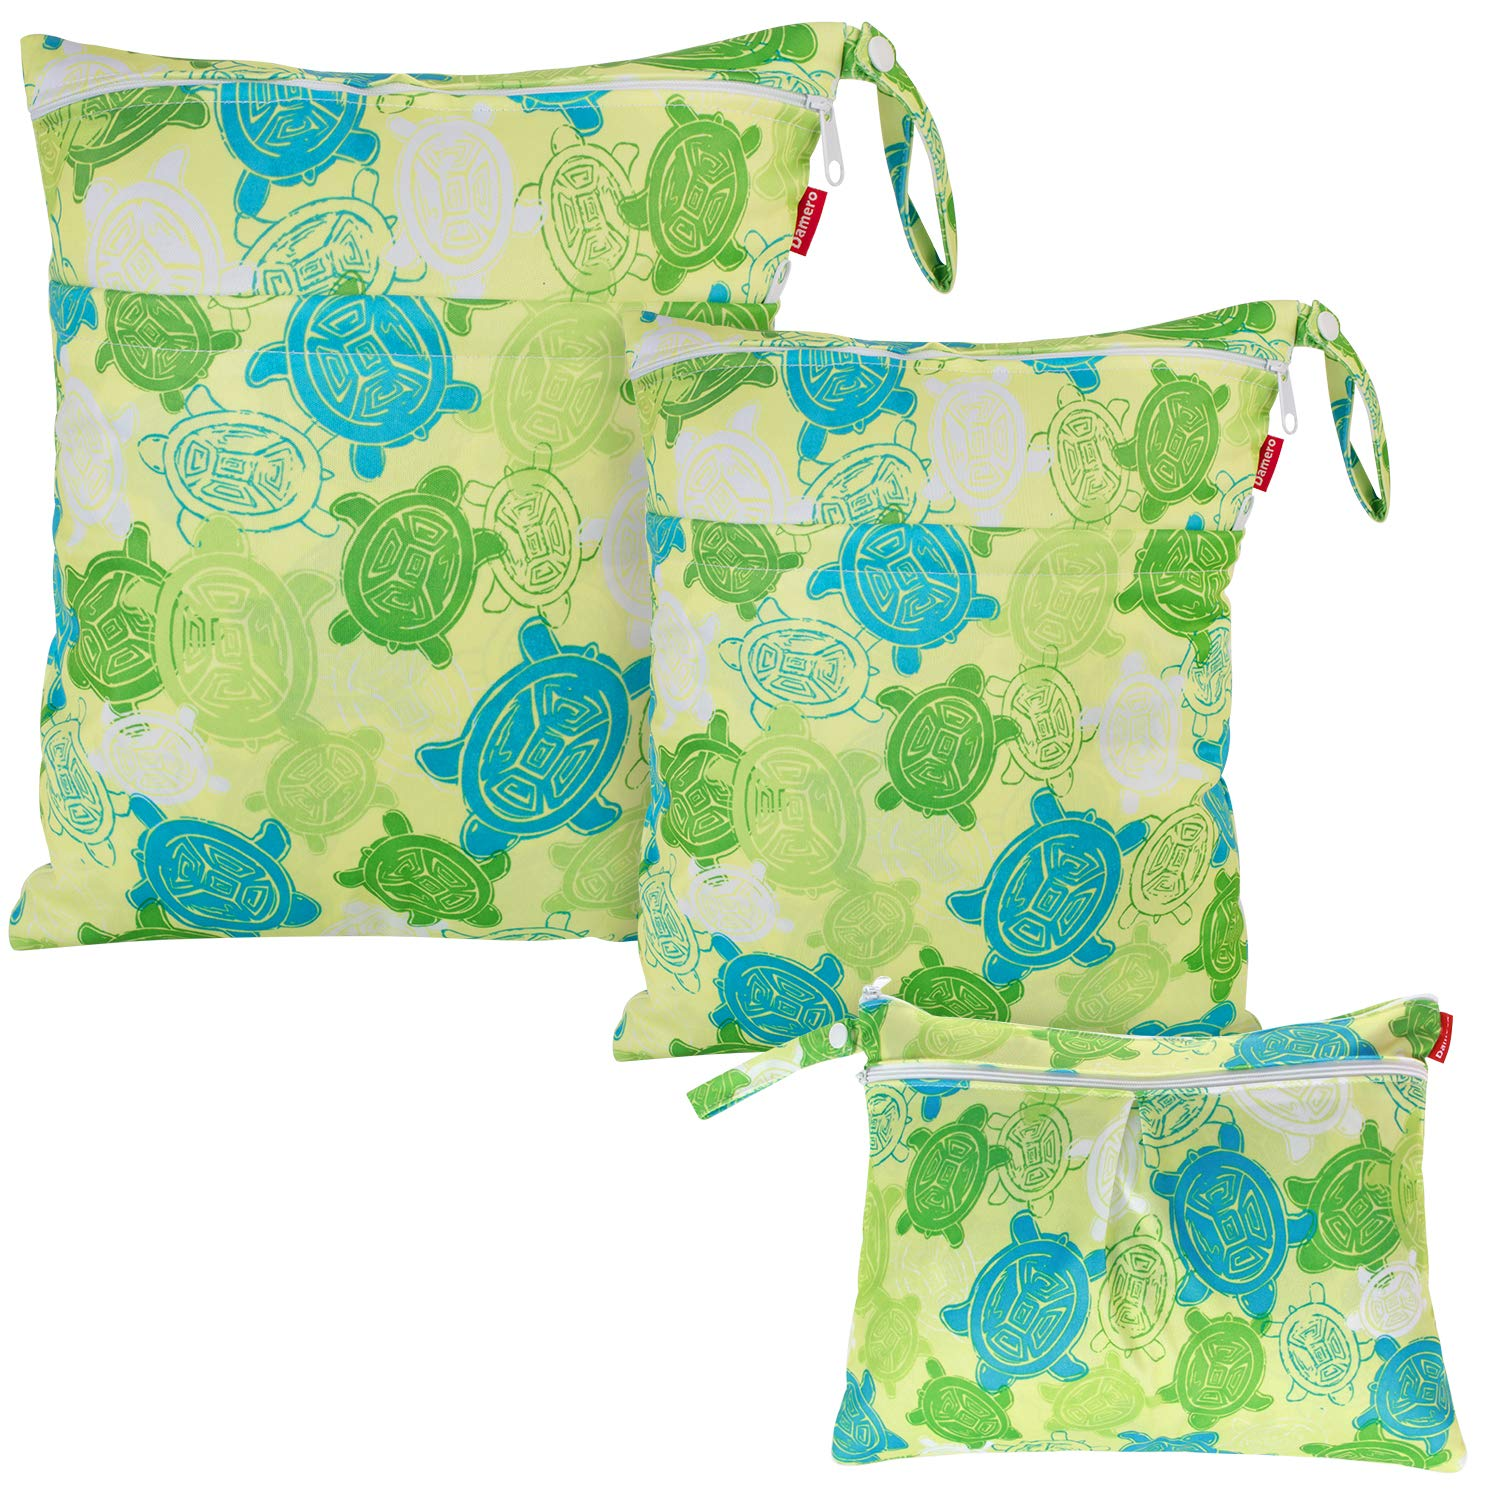 Damero 3pcs Pack Wet Dry Bag for Cloth Diapers Daycare Organizer Bag, Turtles Green